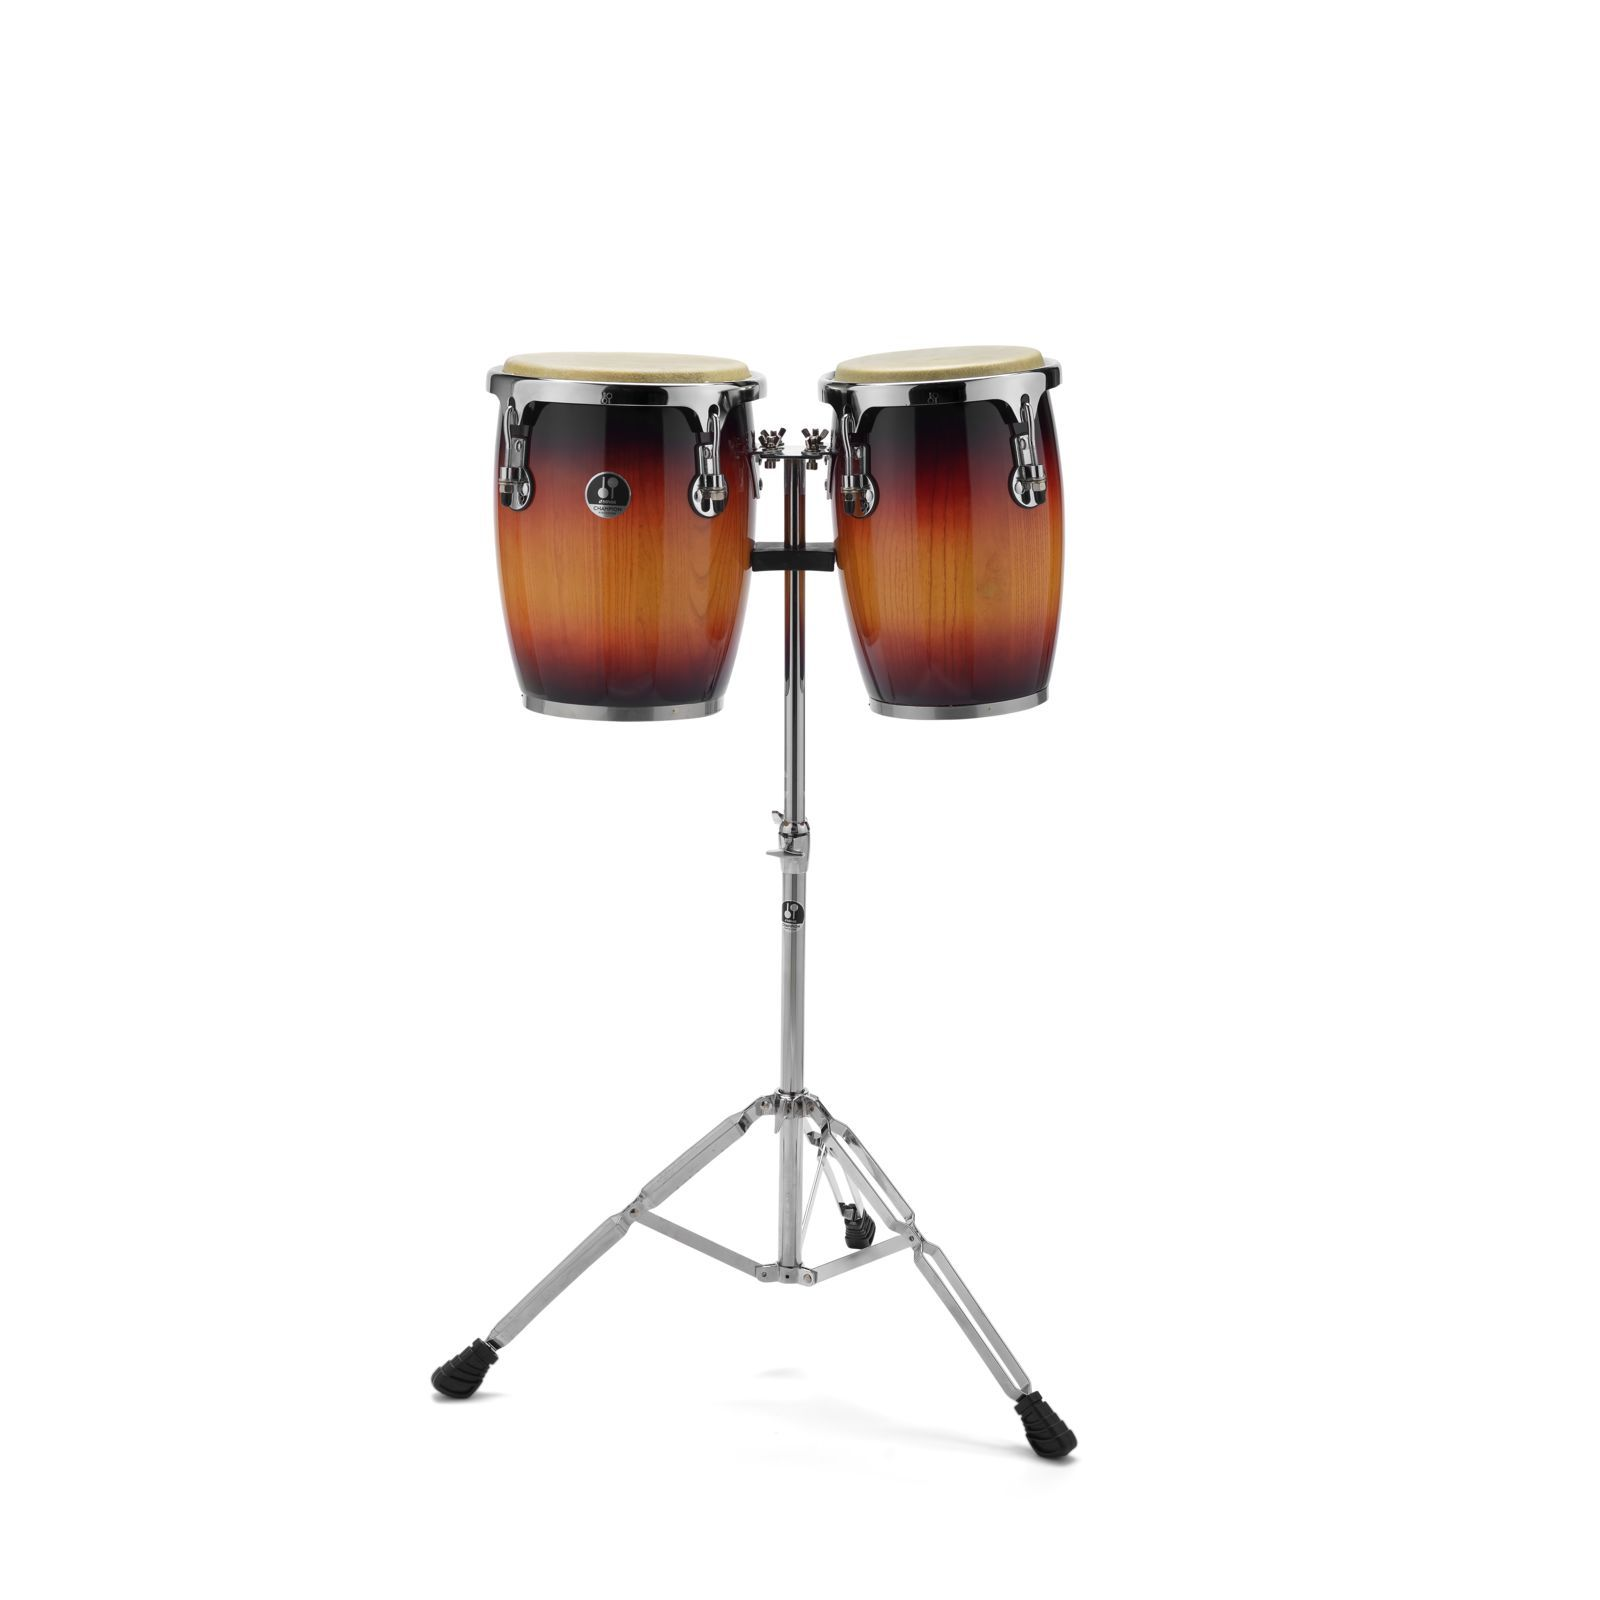 "Sonor Champion Mini Conga Set, CMC0910SHG, 9"" & 10"" Sunburst Produktbild"